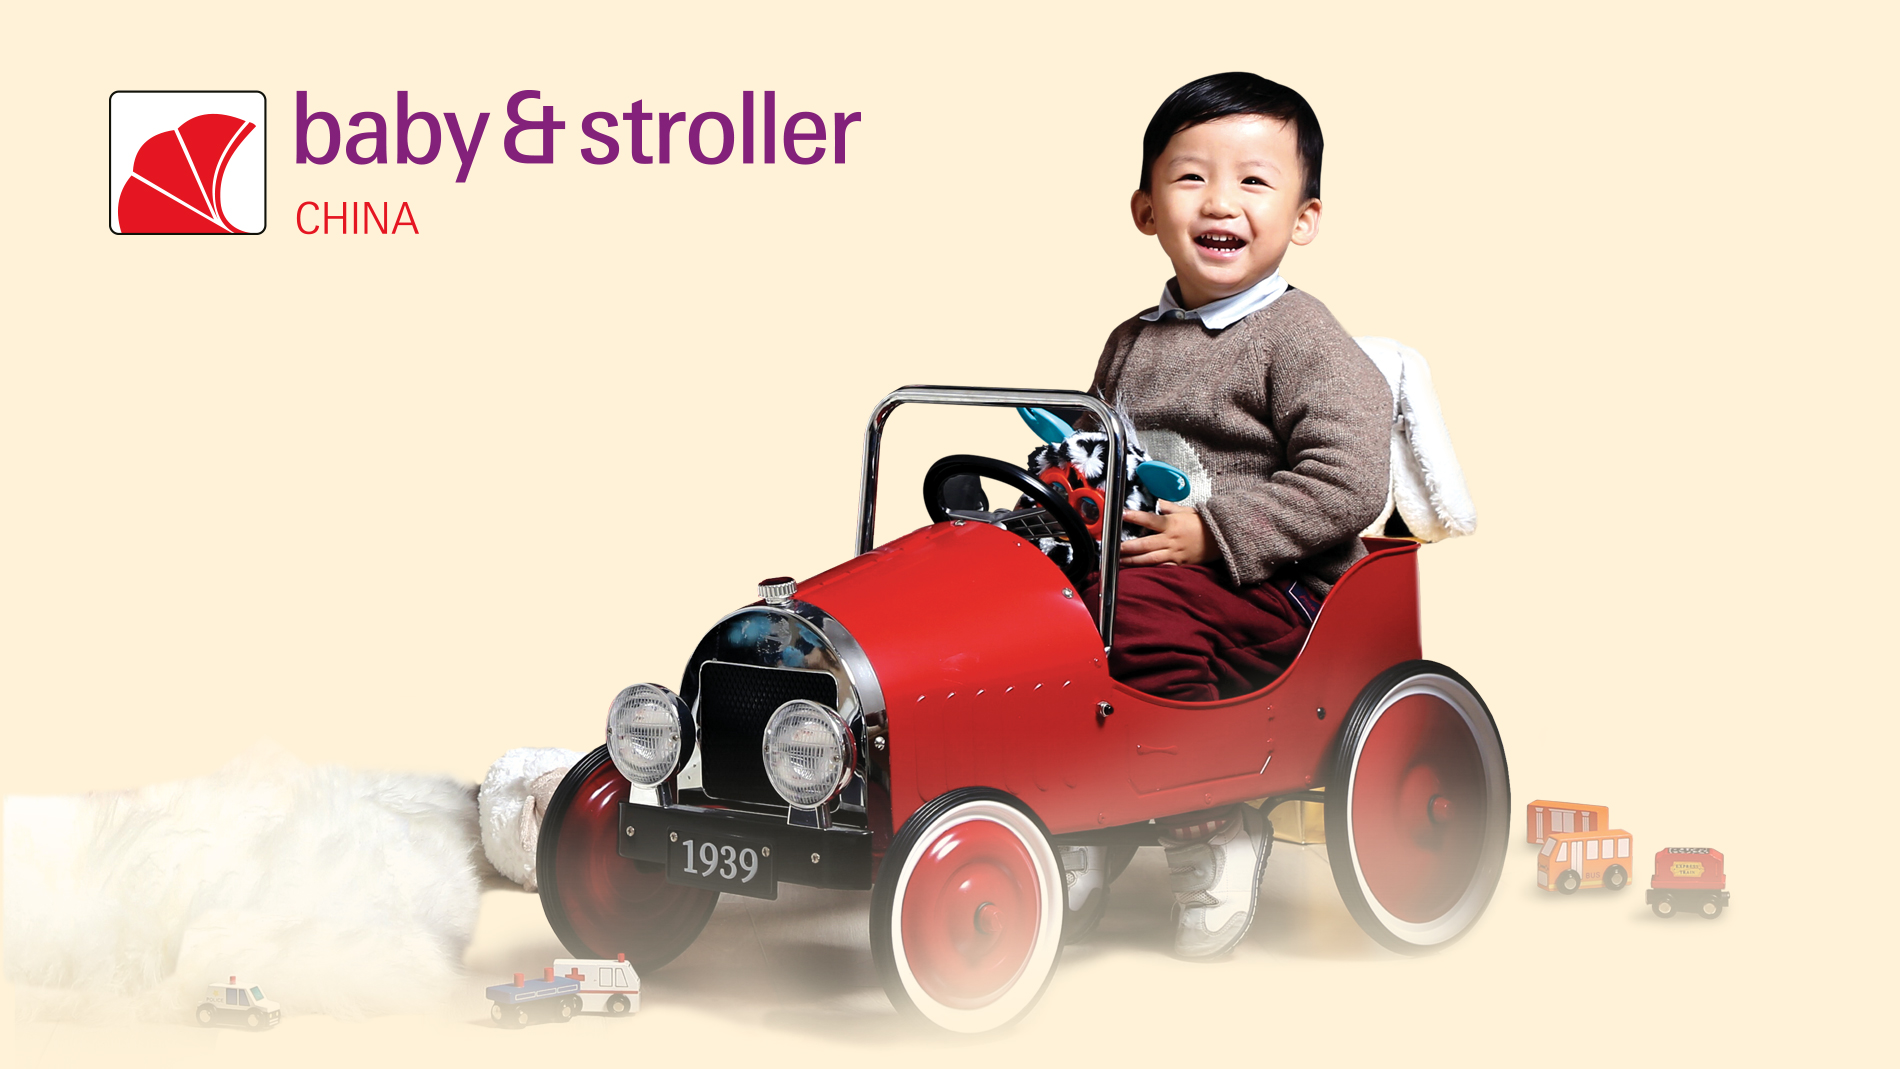 Baby & Stroller China